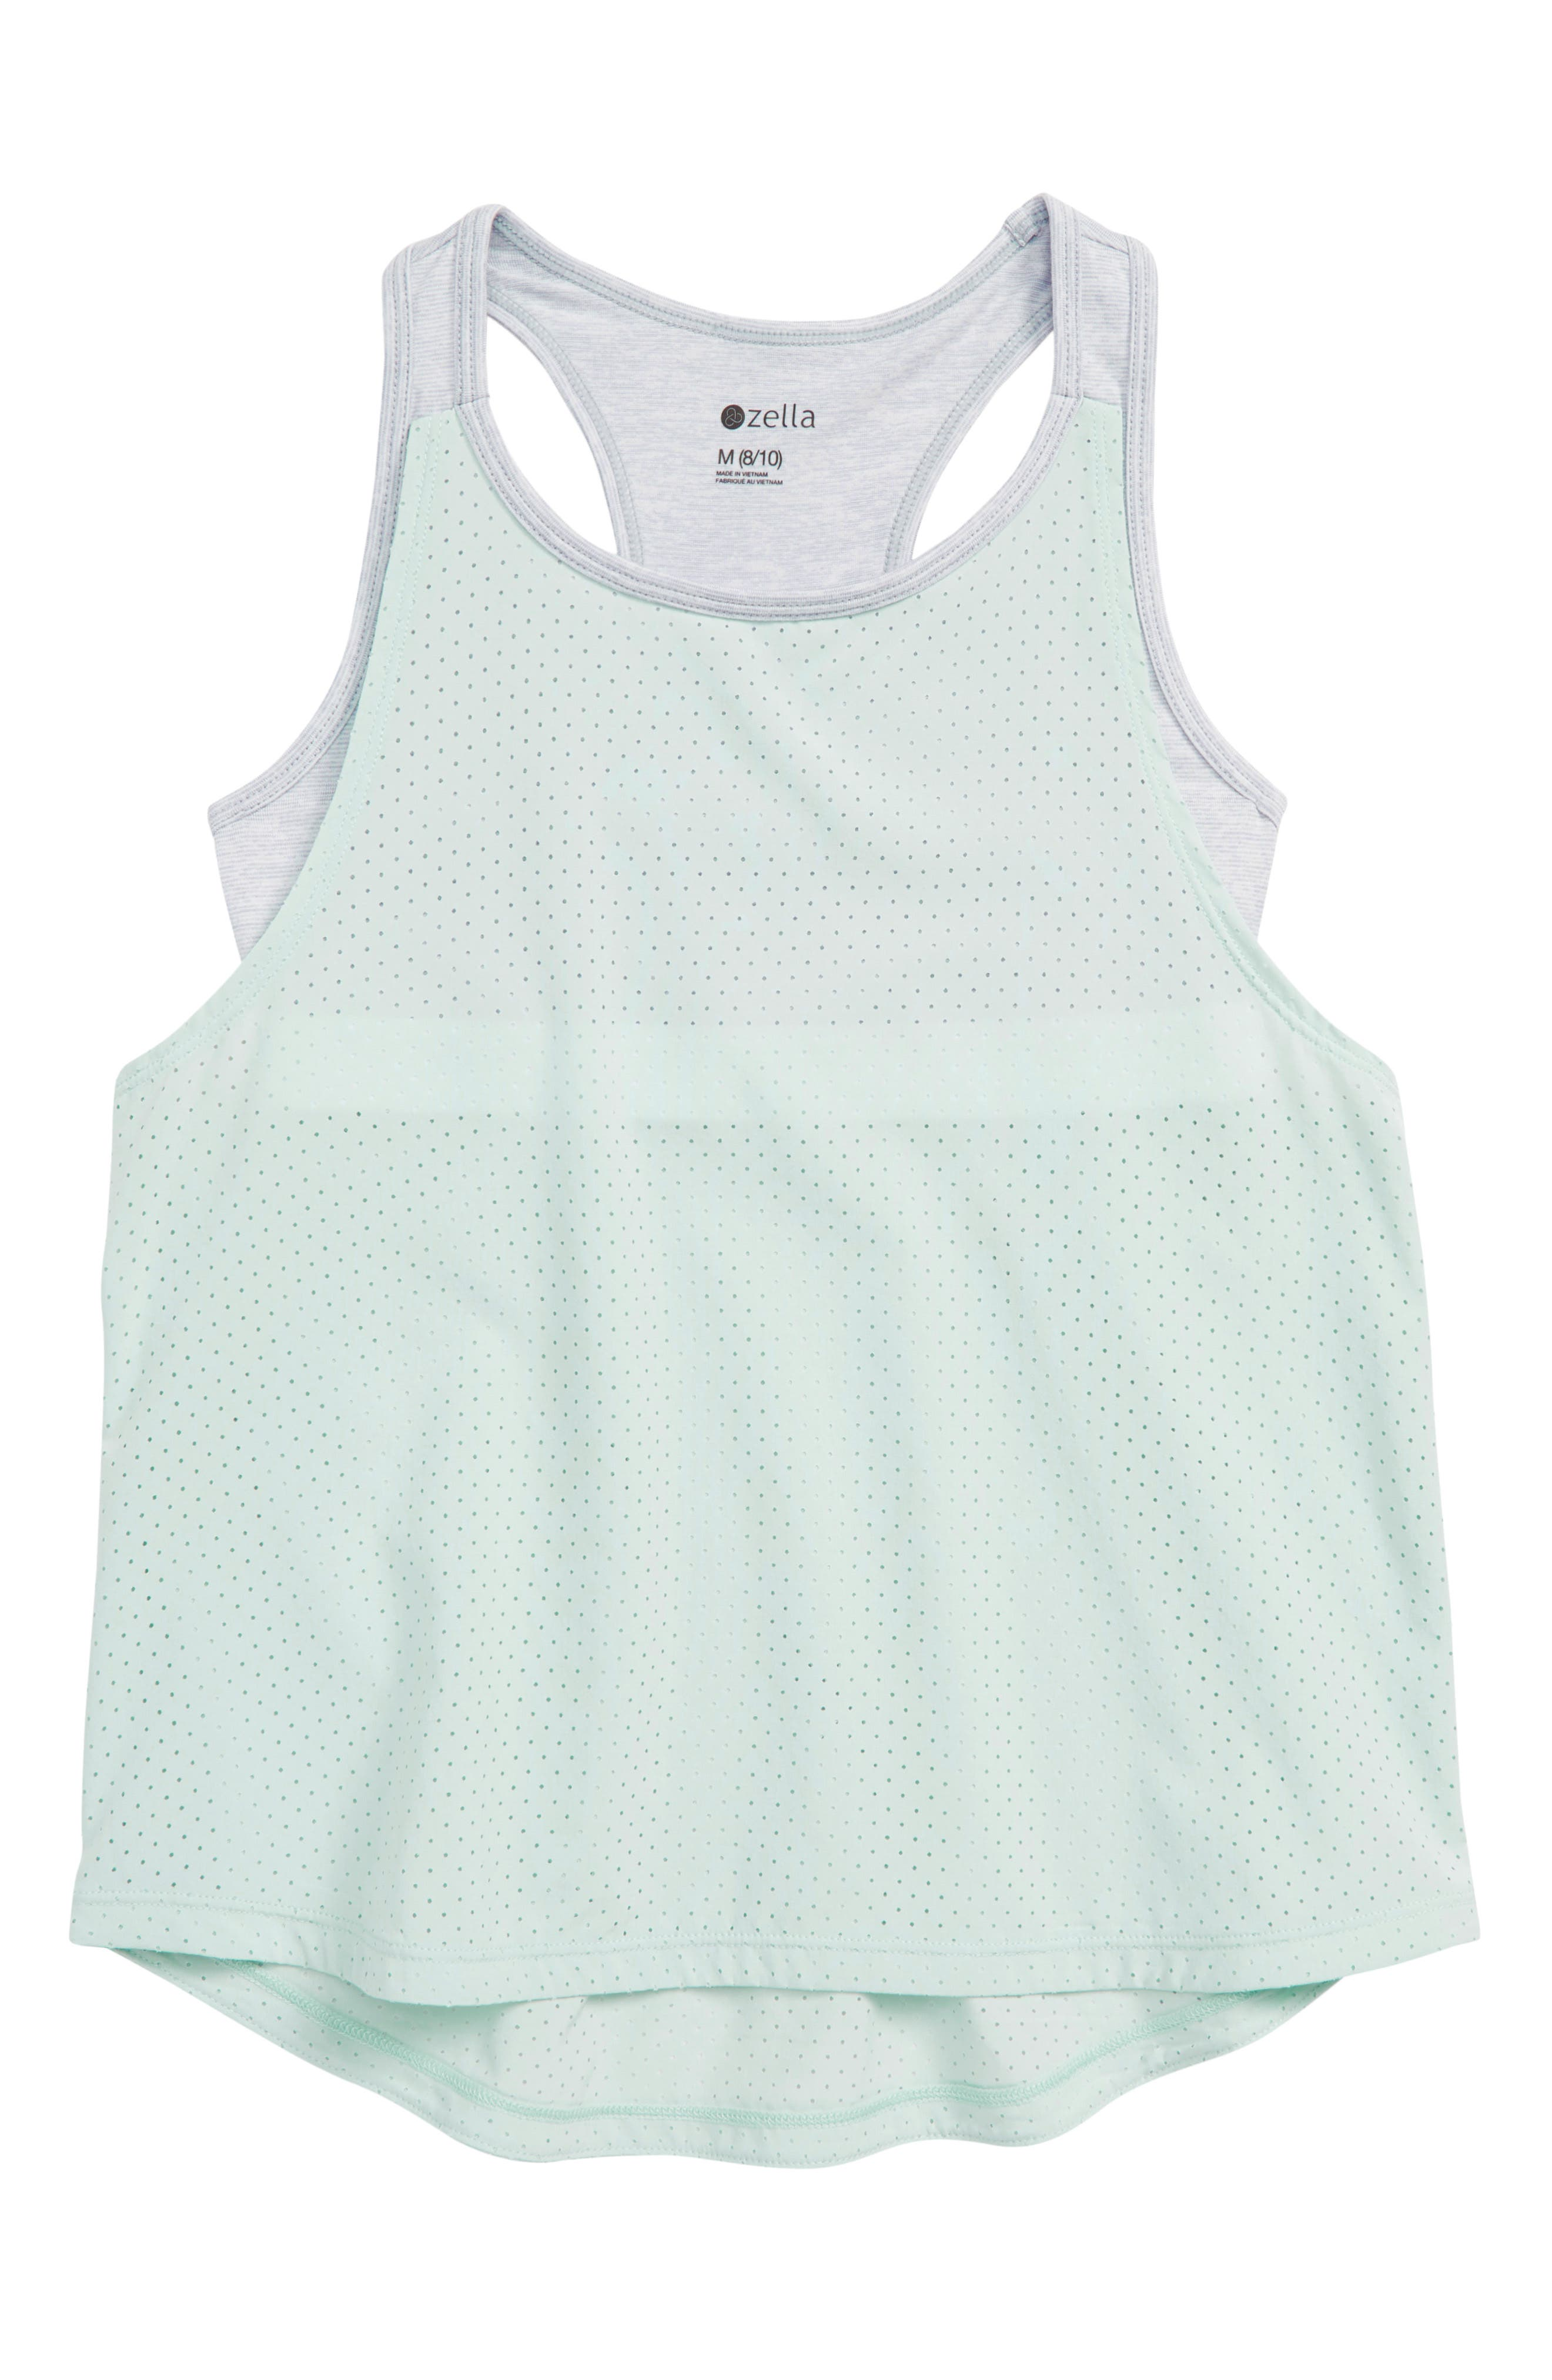 ZELLA GIRL Sundazed Layer Tank, Main, color, TEAL SURF